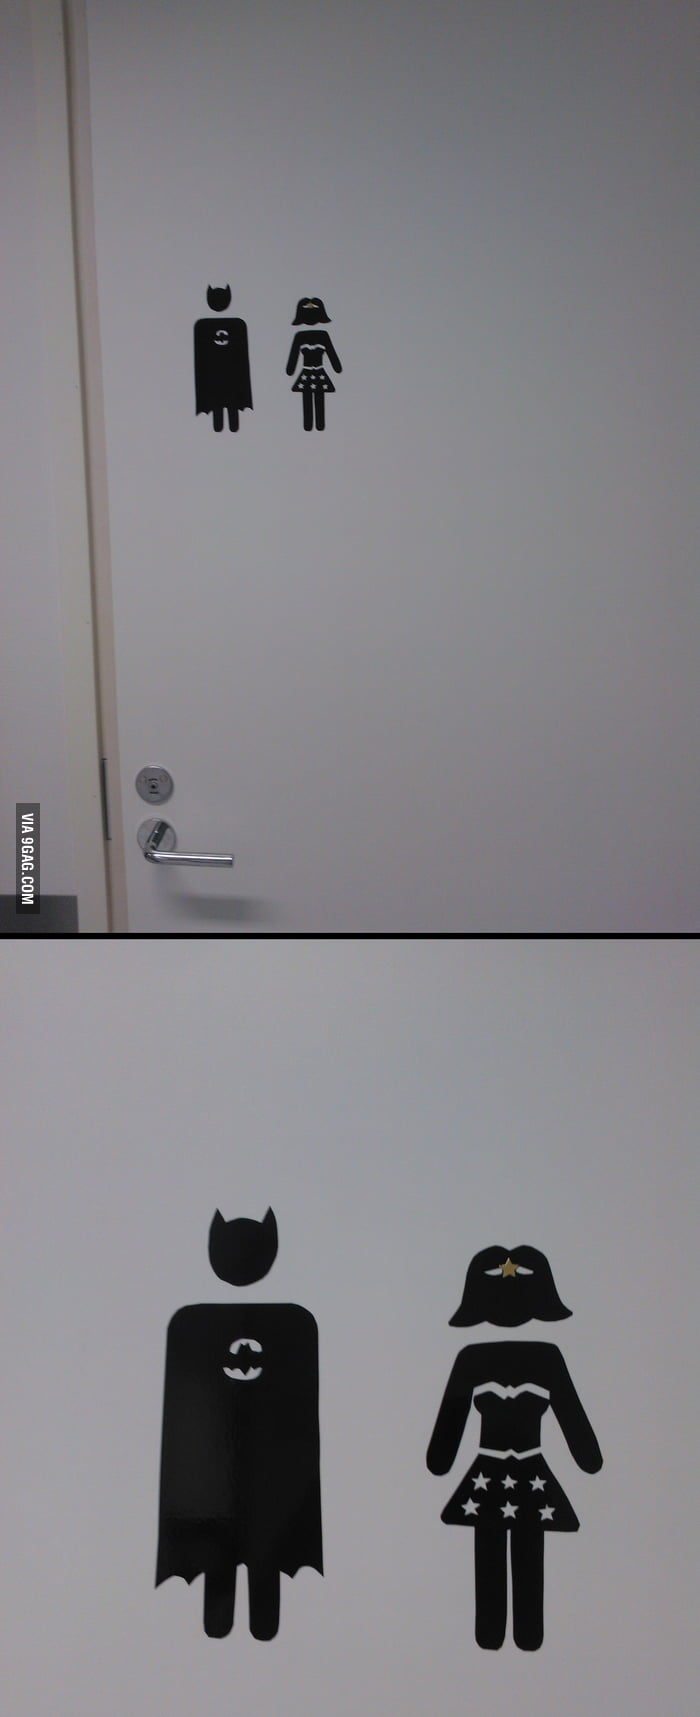 Official staff bathroom door signs at finland 39 s newest for Bathroom 9gag